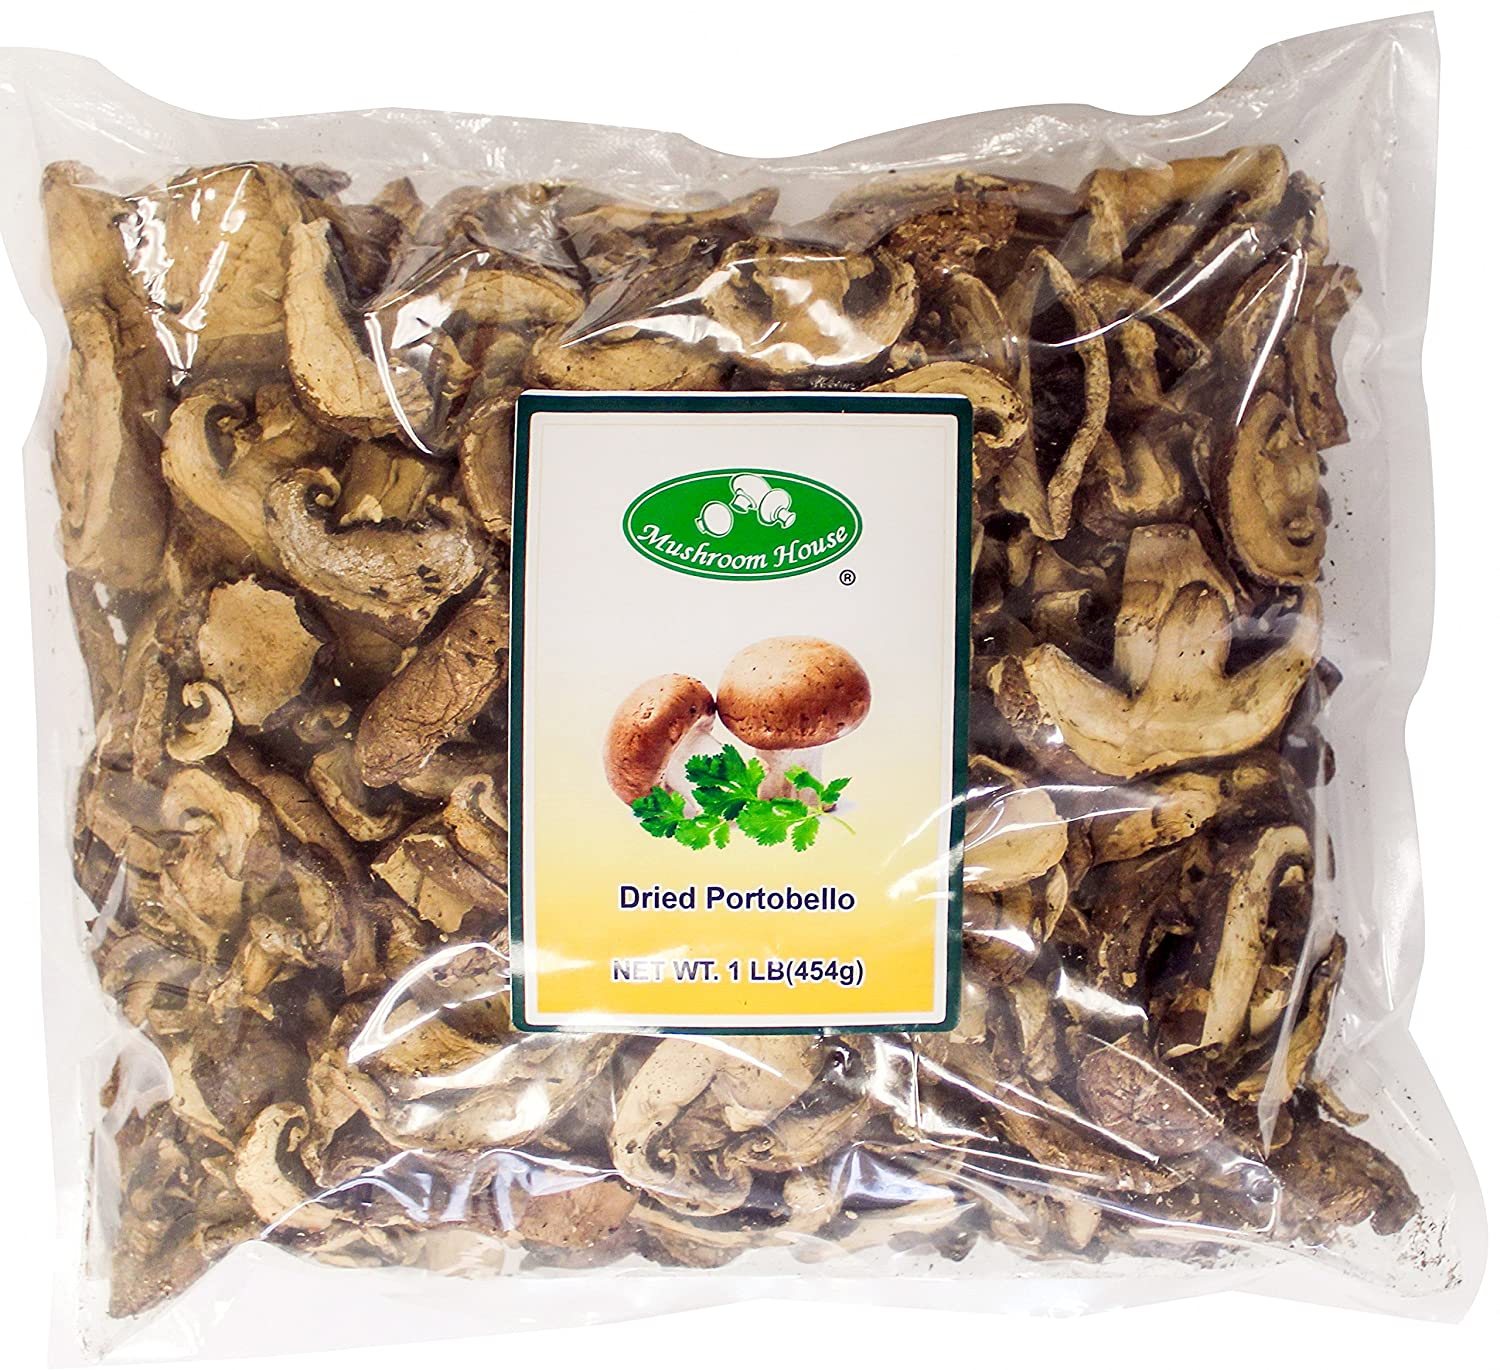 Mushroom House Dried Portobello Mushroom Slices 1 Lb Amazon Com Grocery Gourmet Food